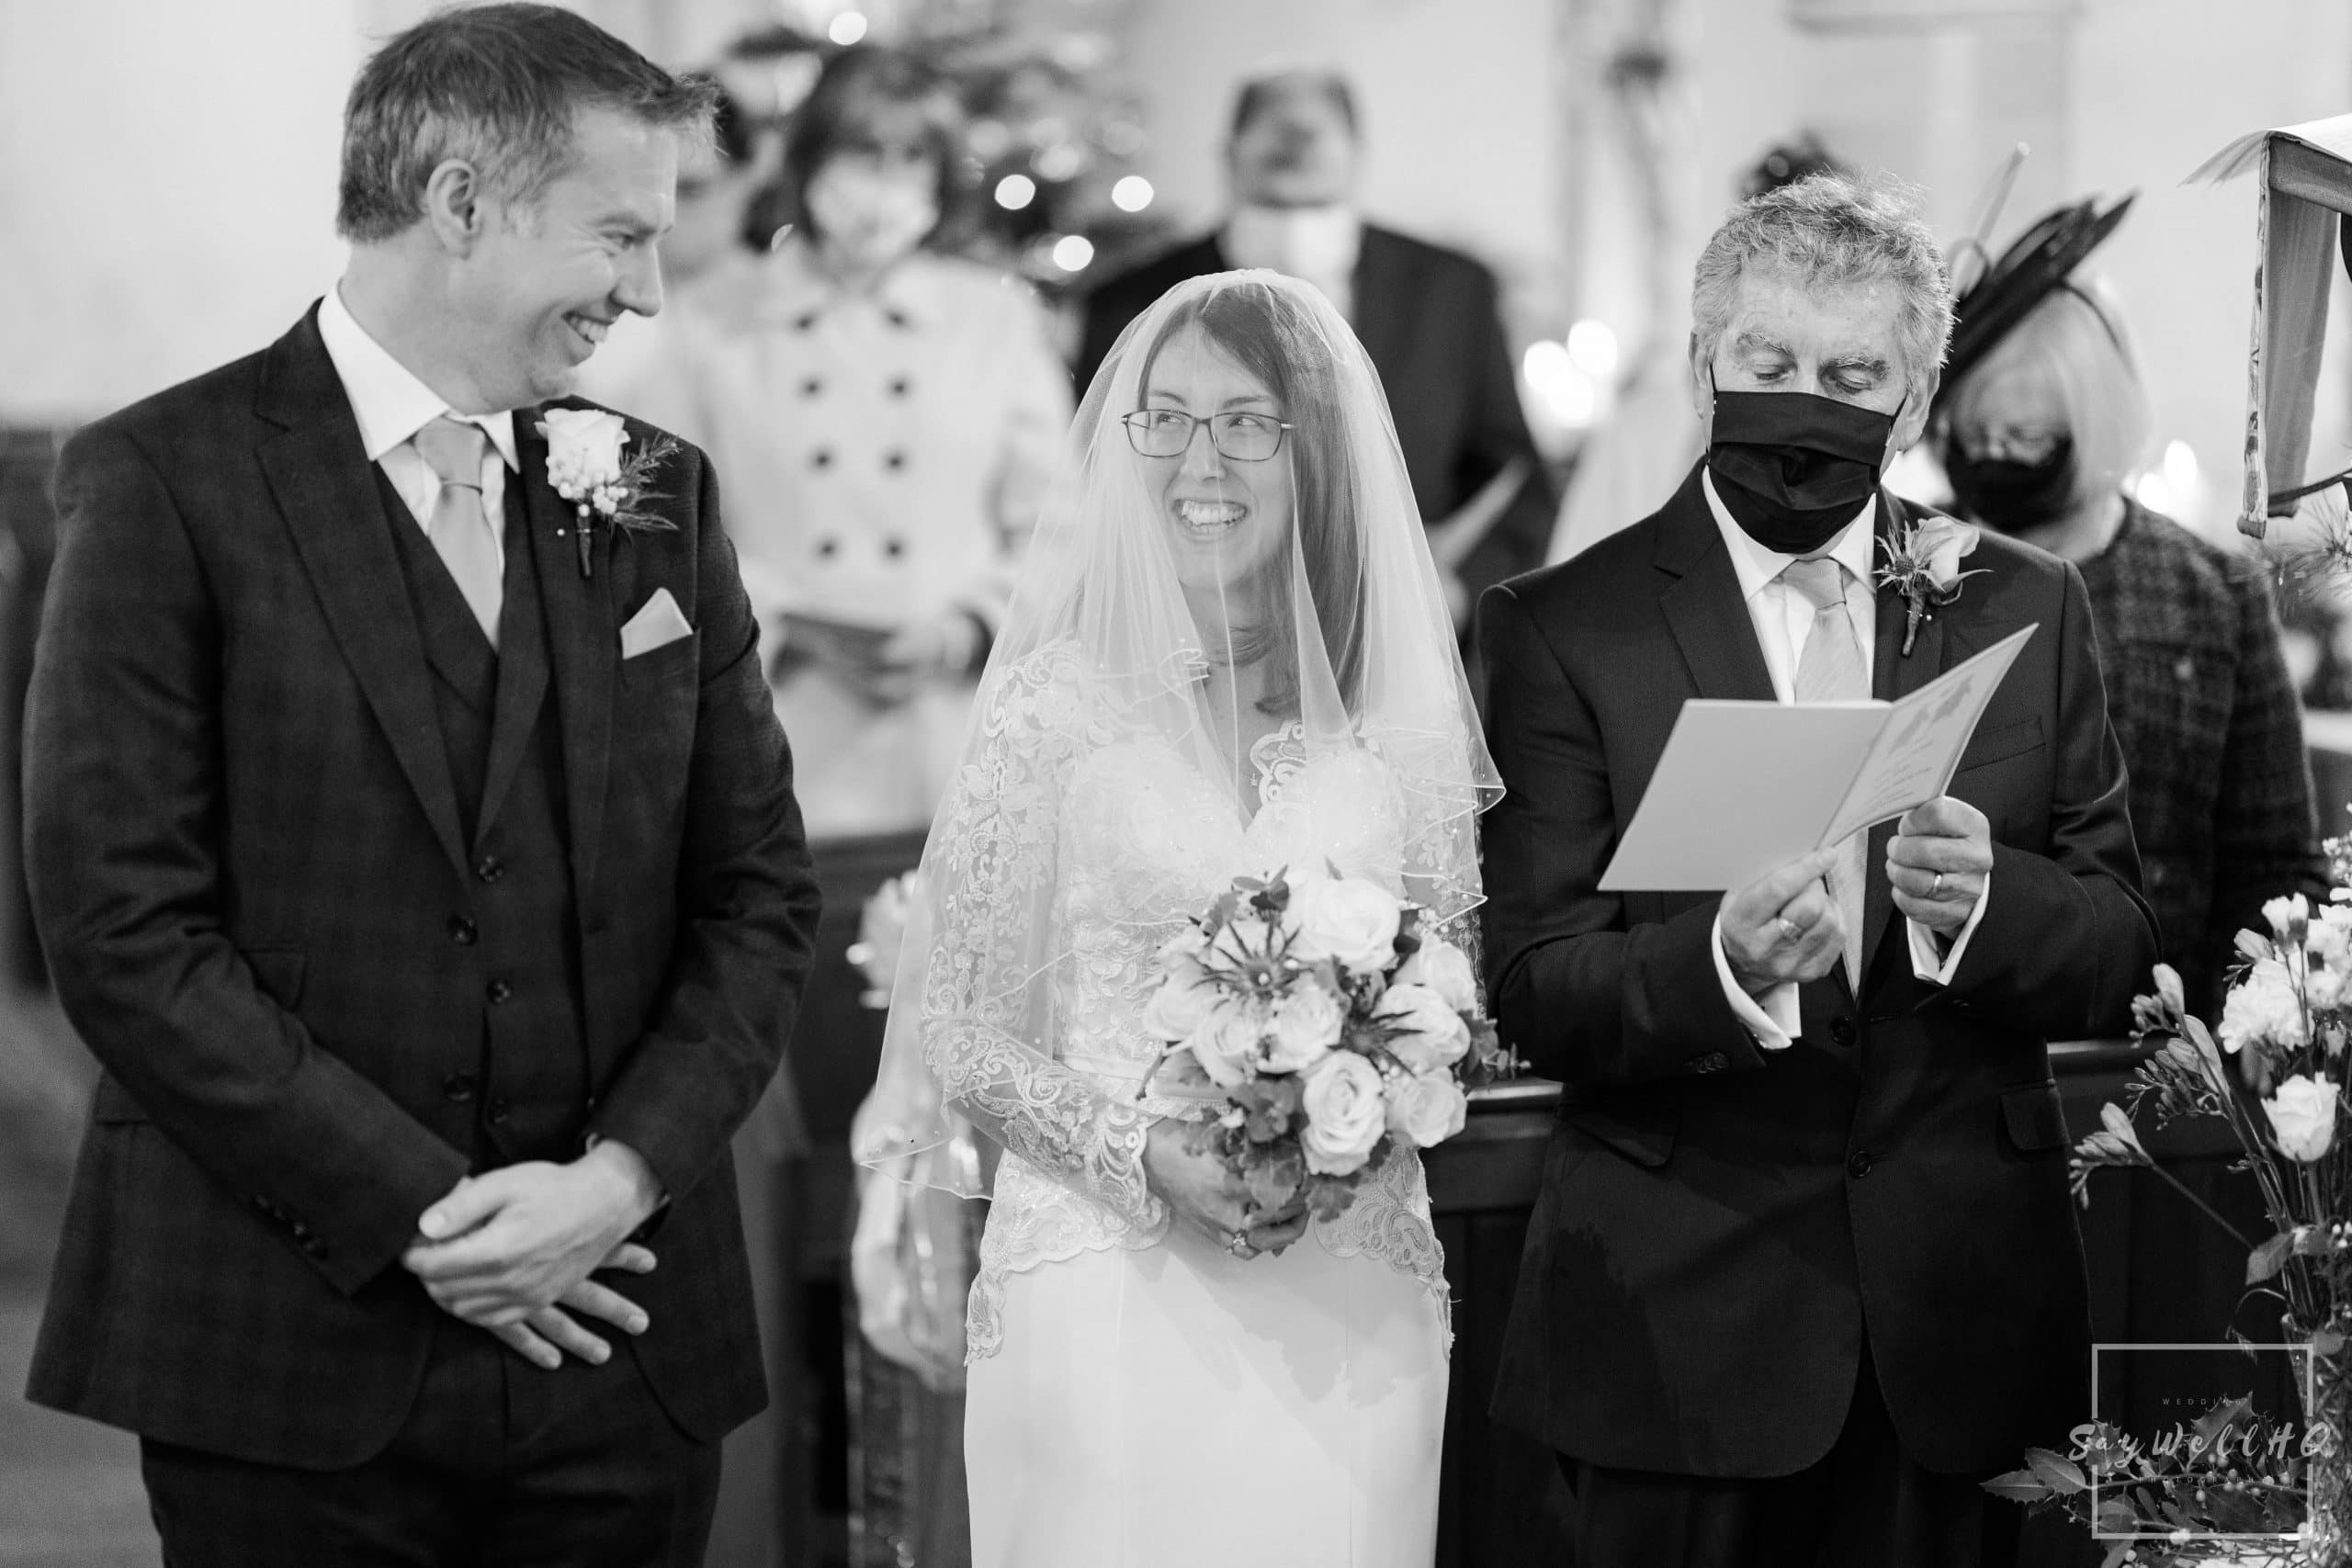 Vale of Belvoir Wedding Photography - Bride and groom see each other for the first time on their wedding day